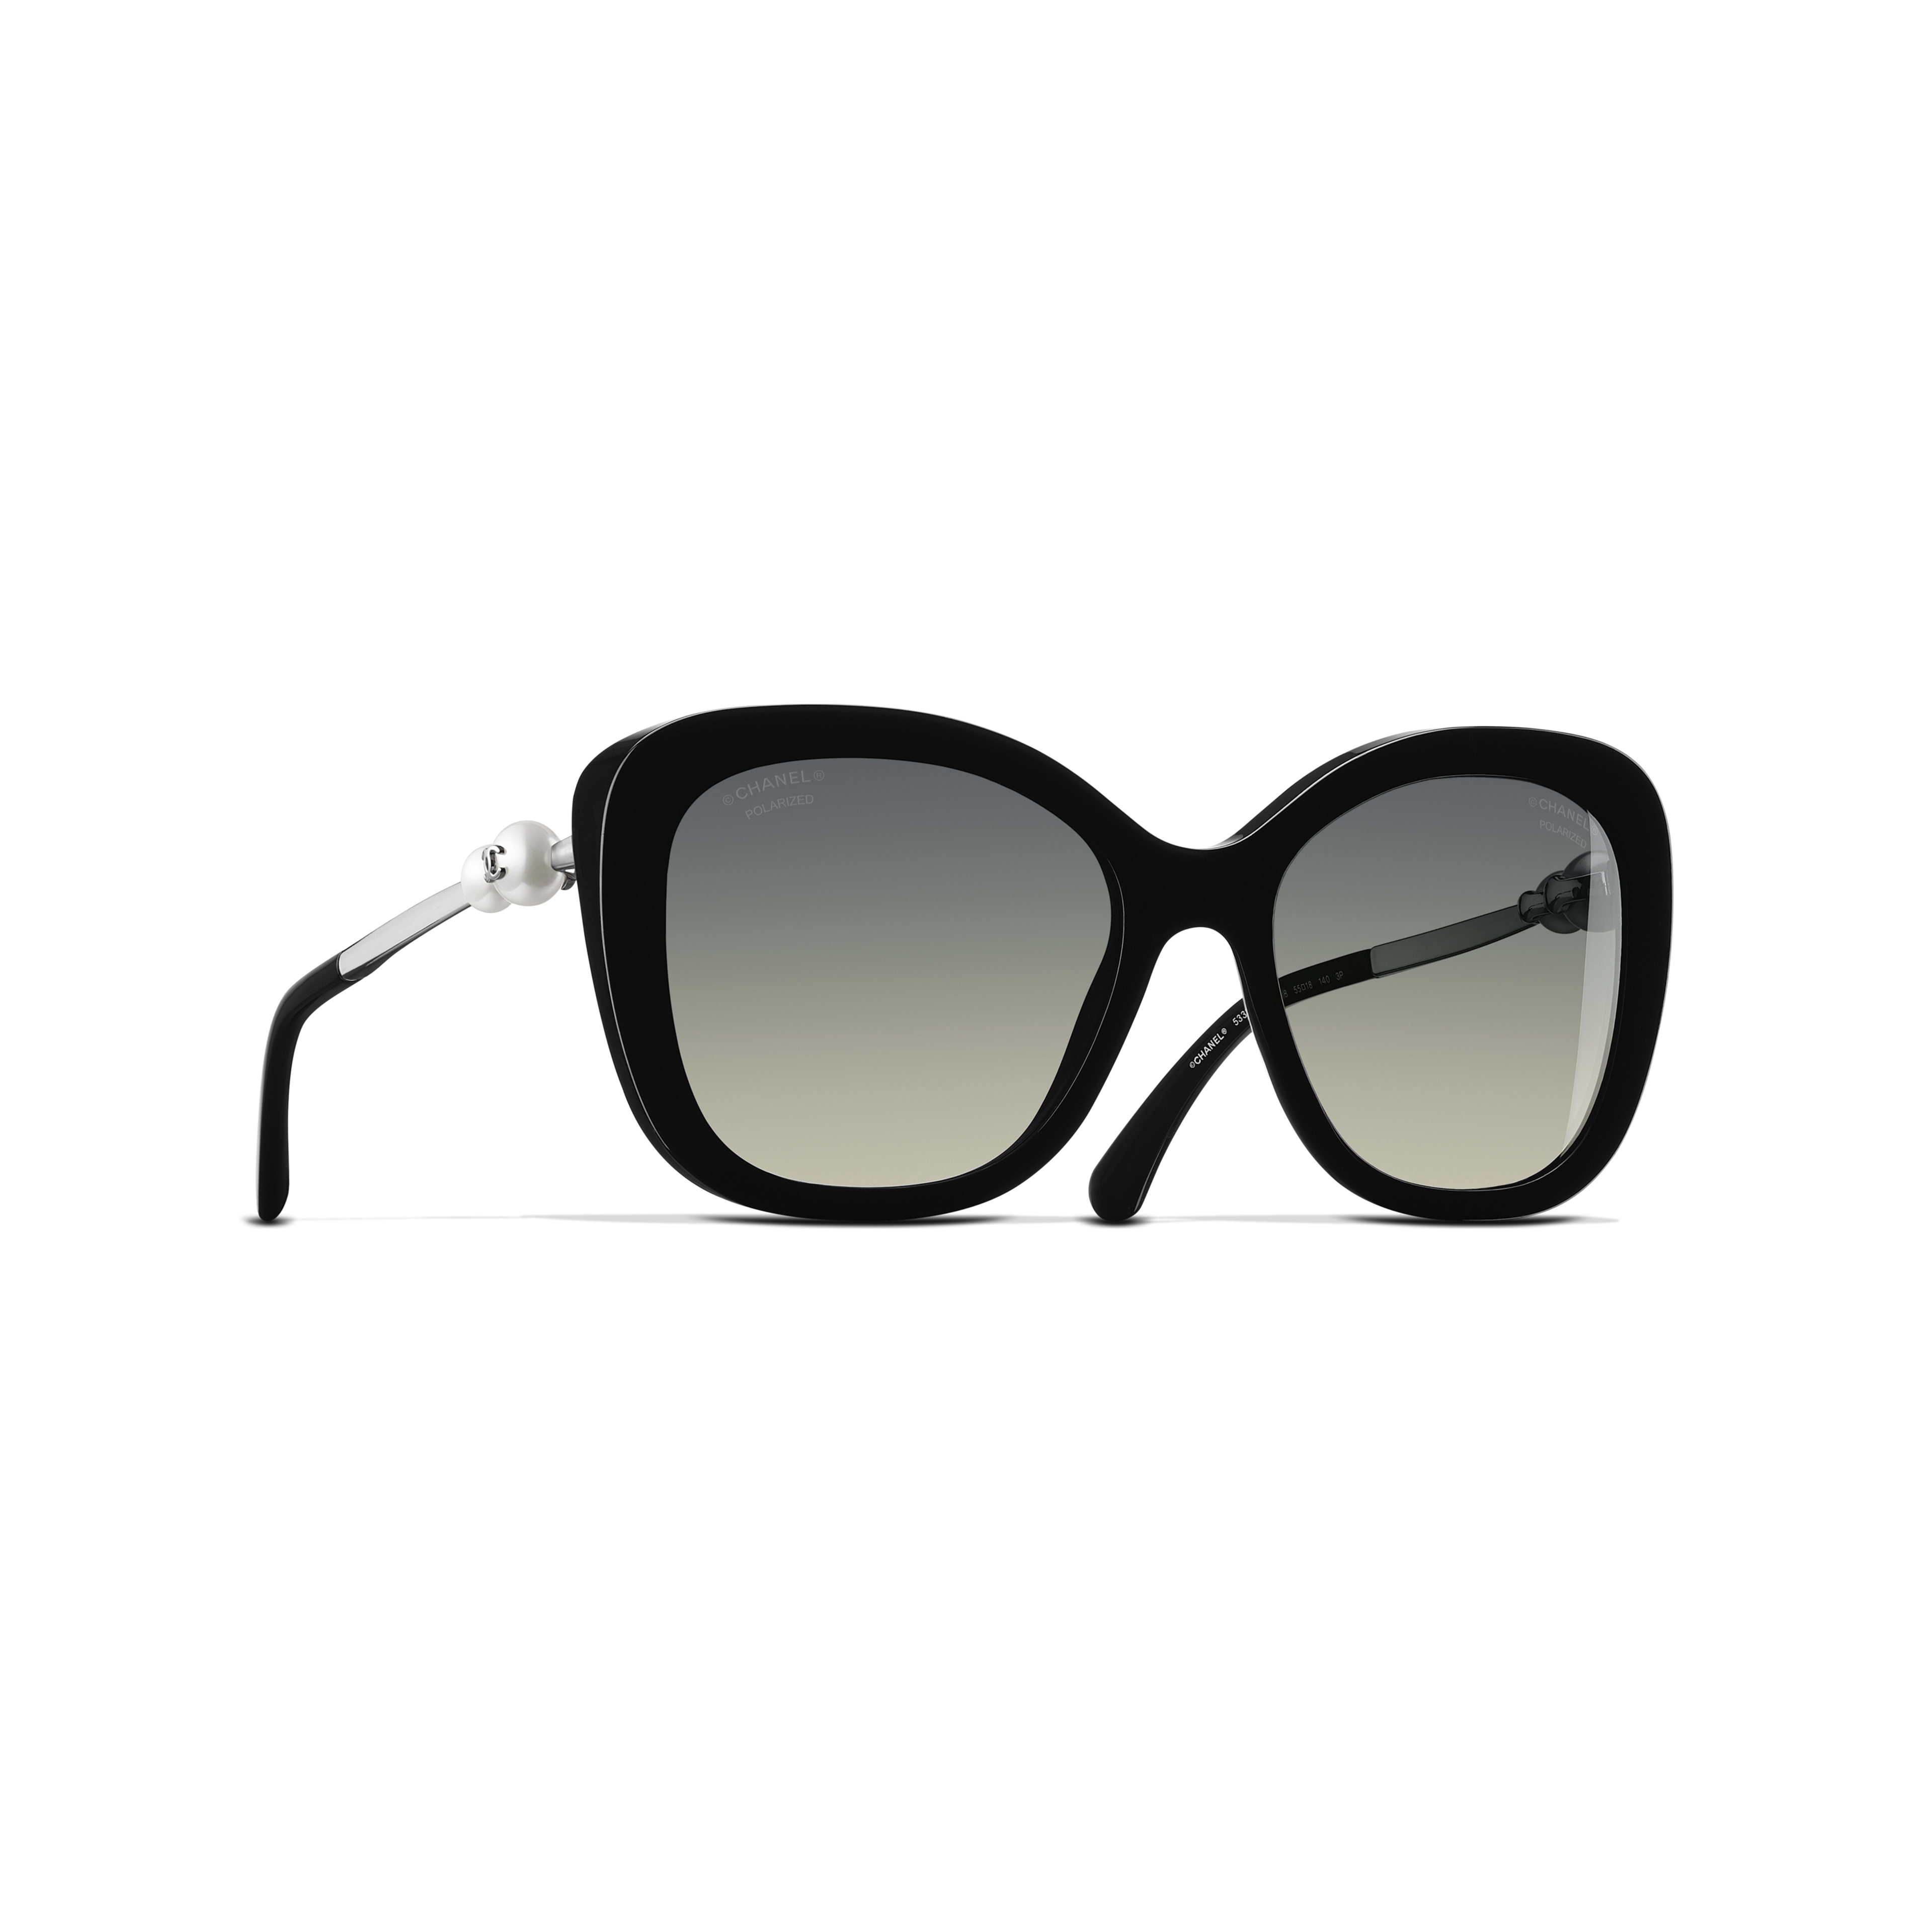 Square Sunglasses - Black - Acetate & Imitation Pearls - CHANEL - Default view - see standard sized version